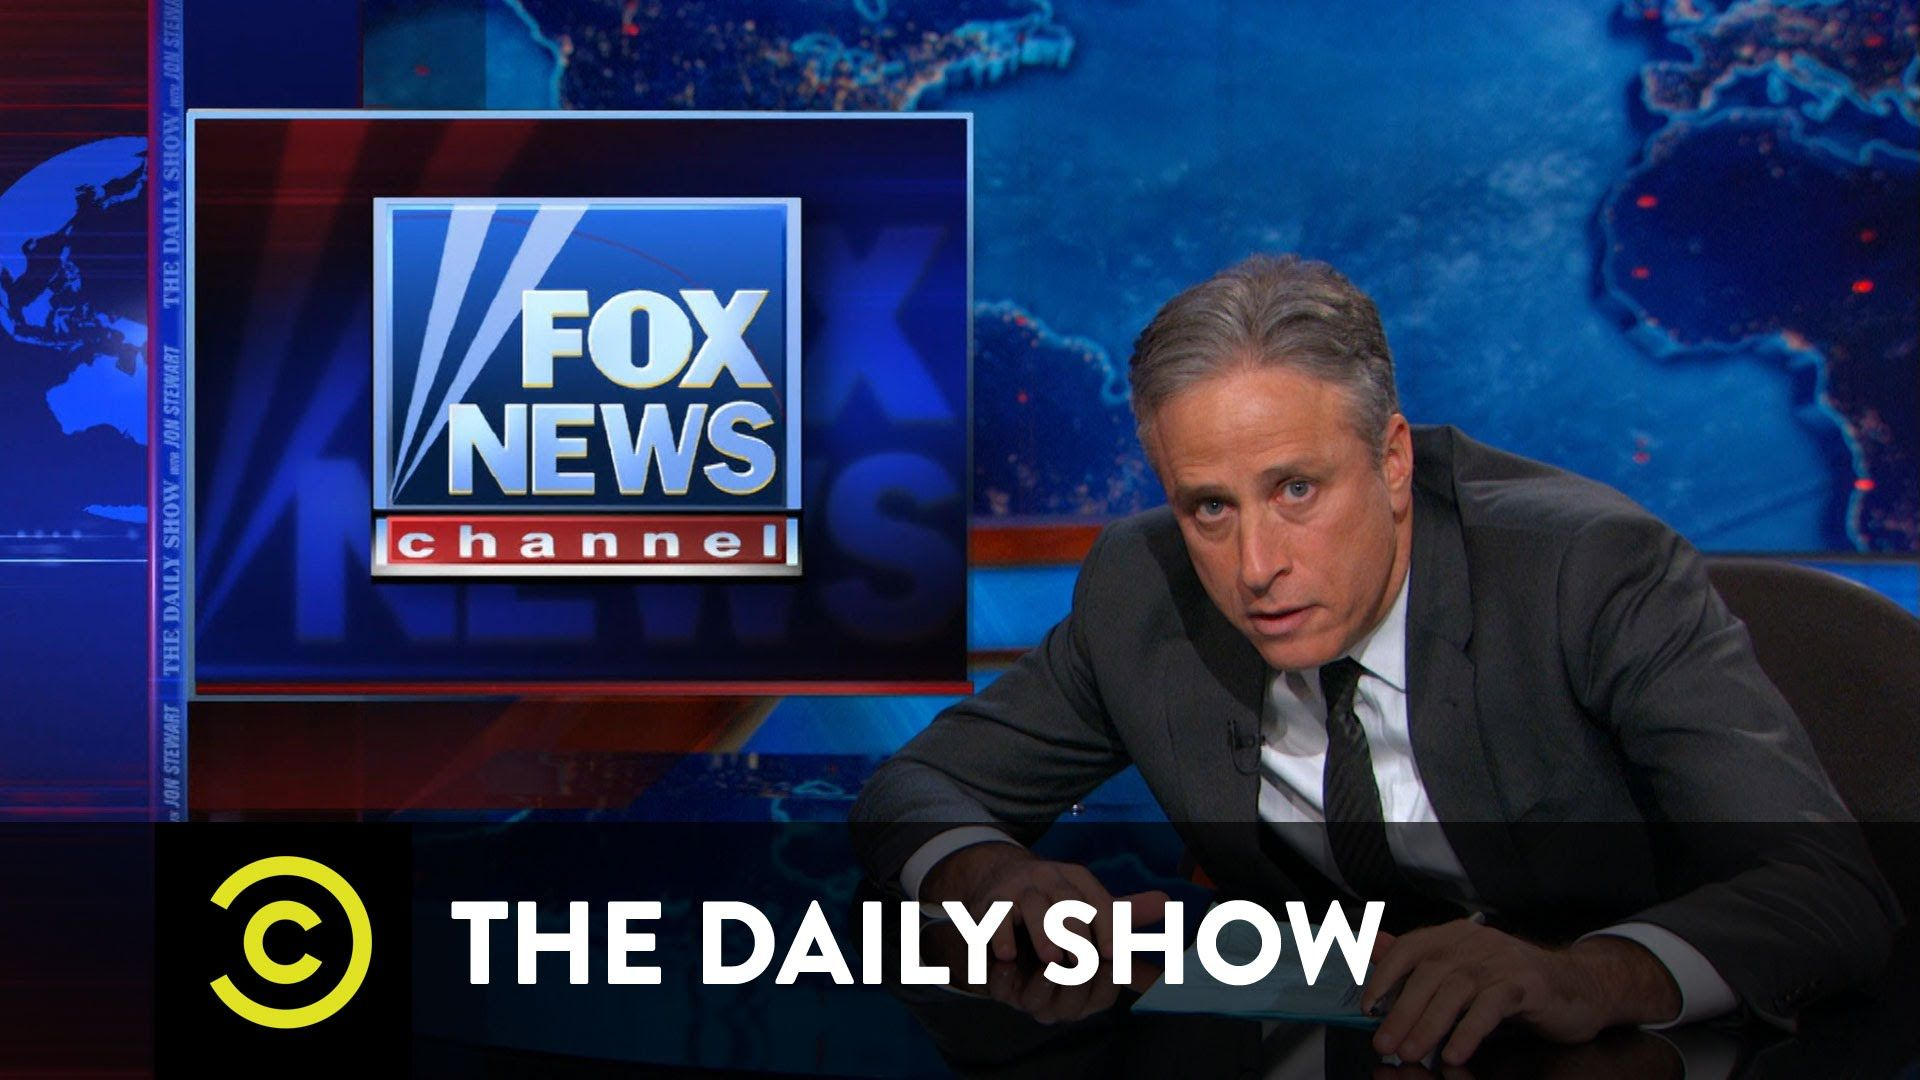 The Daily Show - Instigate….if you don't get it, i don't know if you will ever get it...